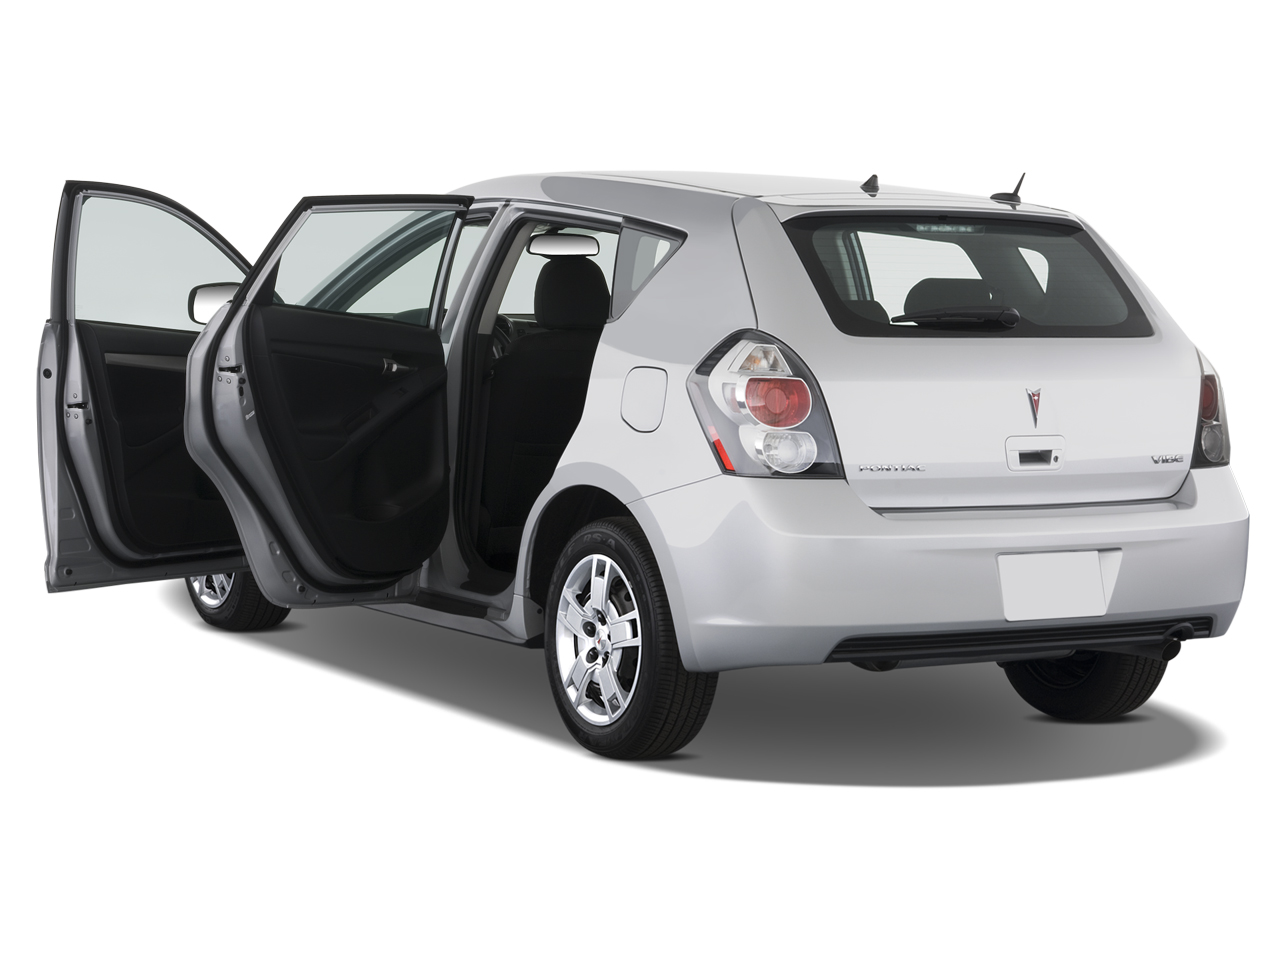 2009 Pontiac Vibe Gt Pontiac Hatchback Review Automobile Magazine